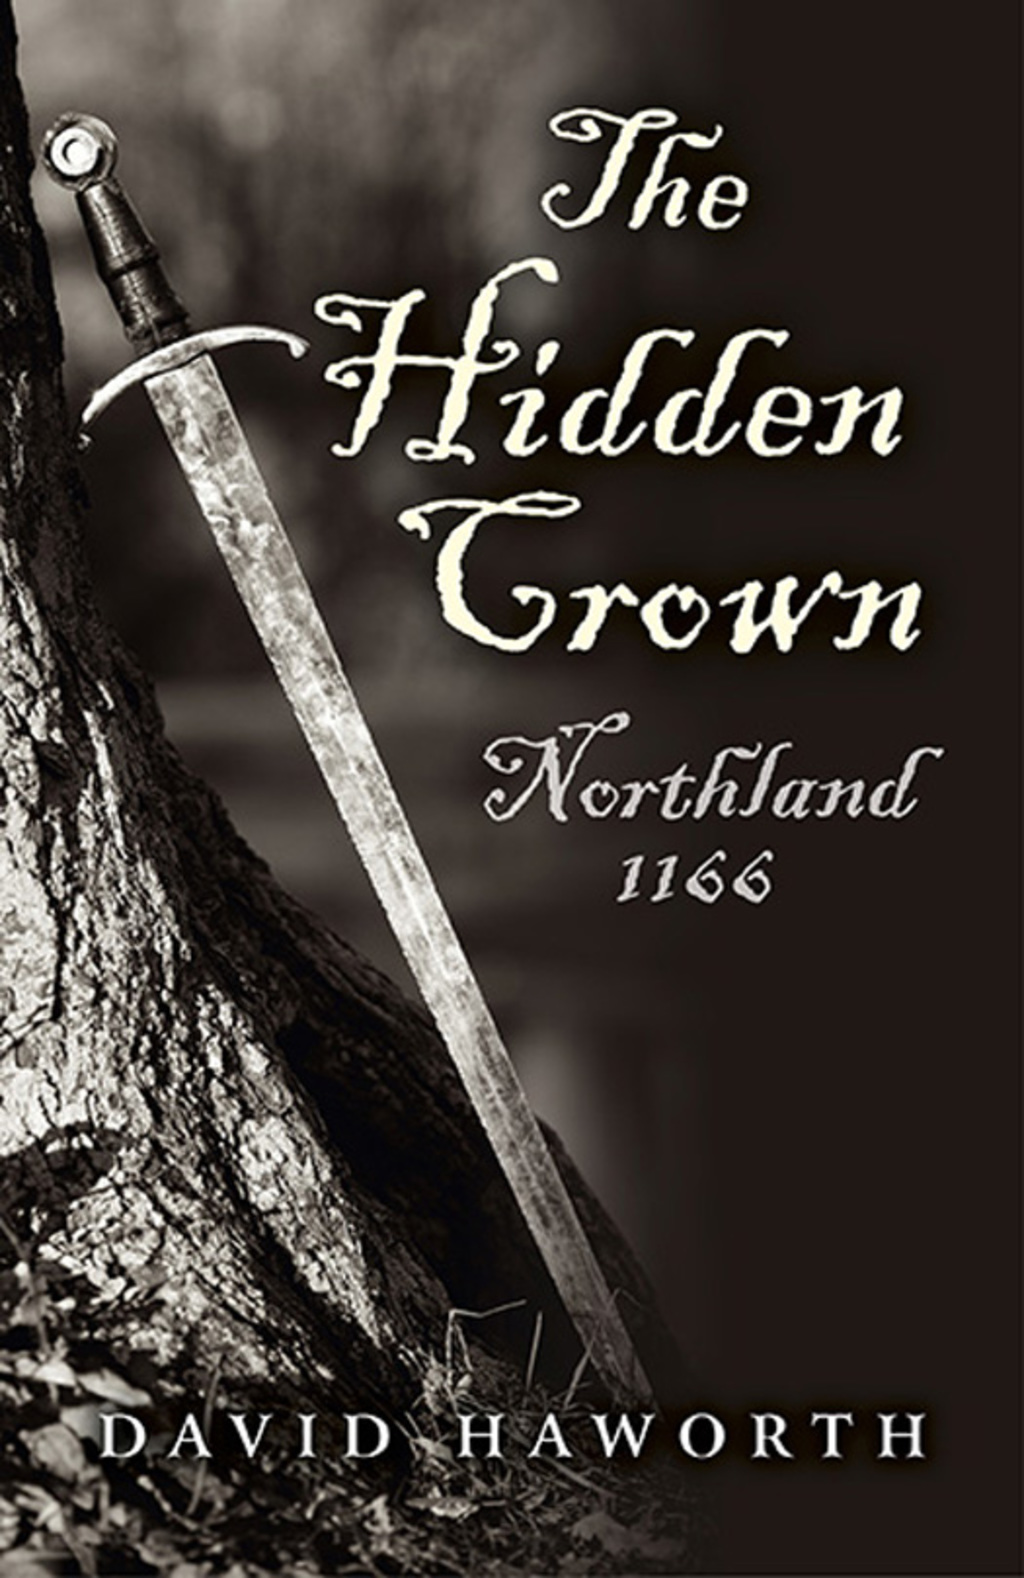 The Hidden Crown: Northland - 1166 (eBook)